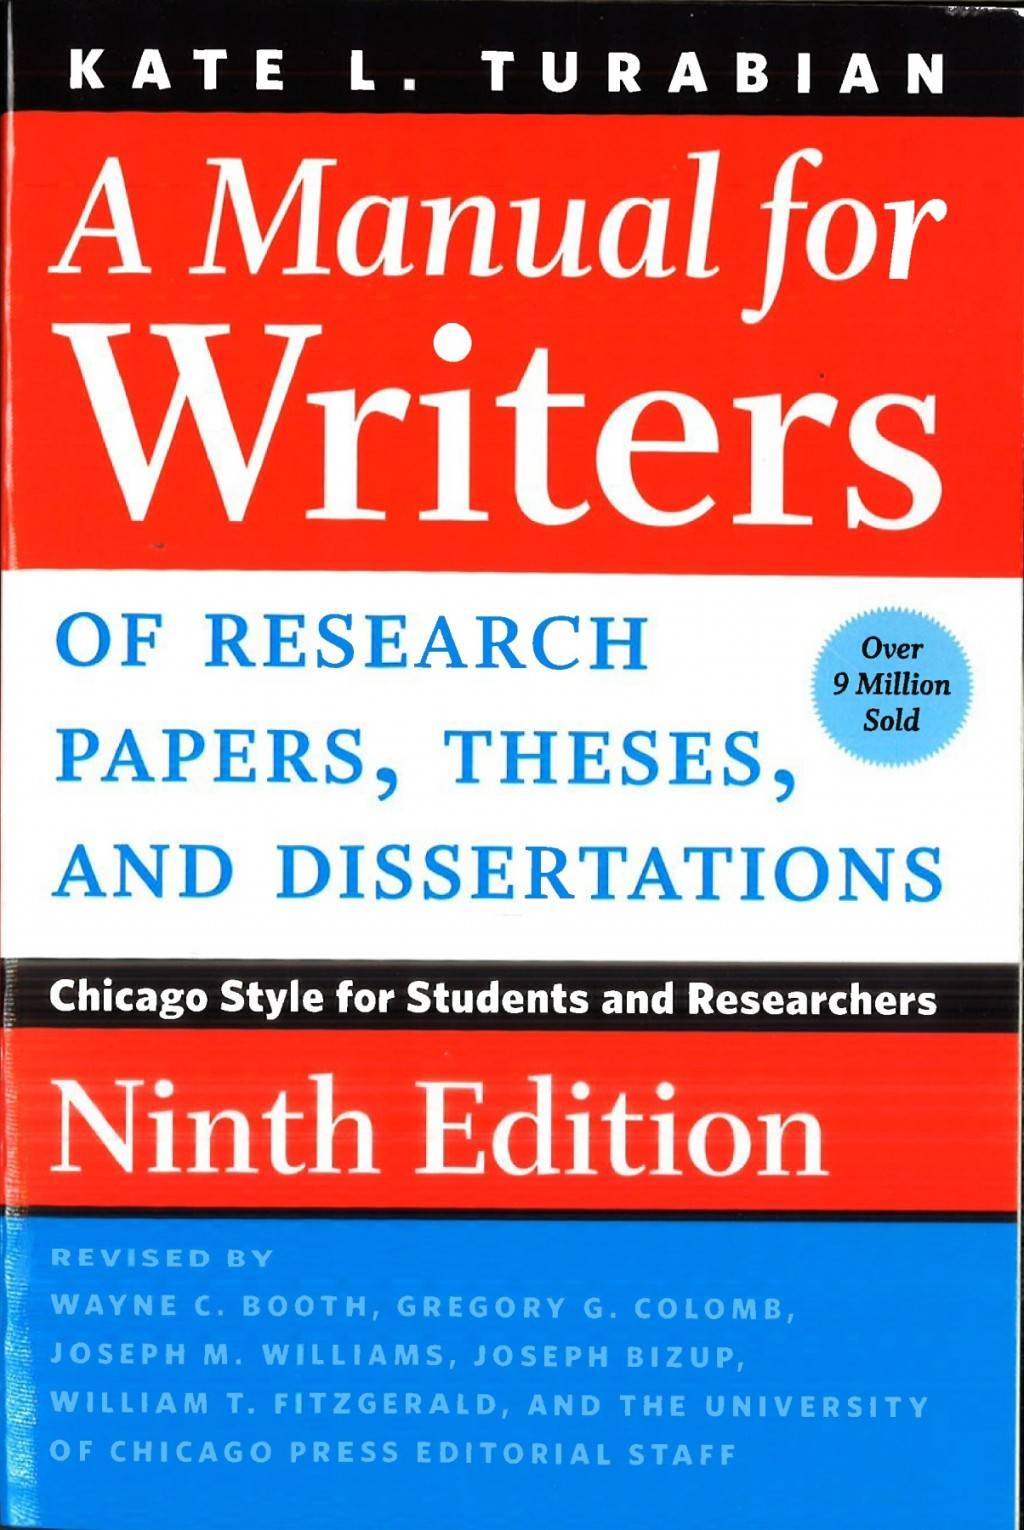 008 Research Paper Manual For Writers Of Papers Theses And Sensational A Dissertations Eighth Edition Pdf 9th 8th Large